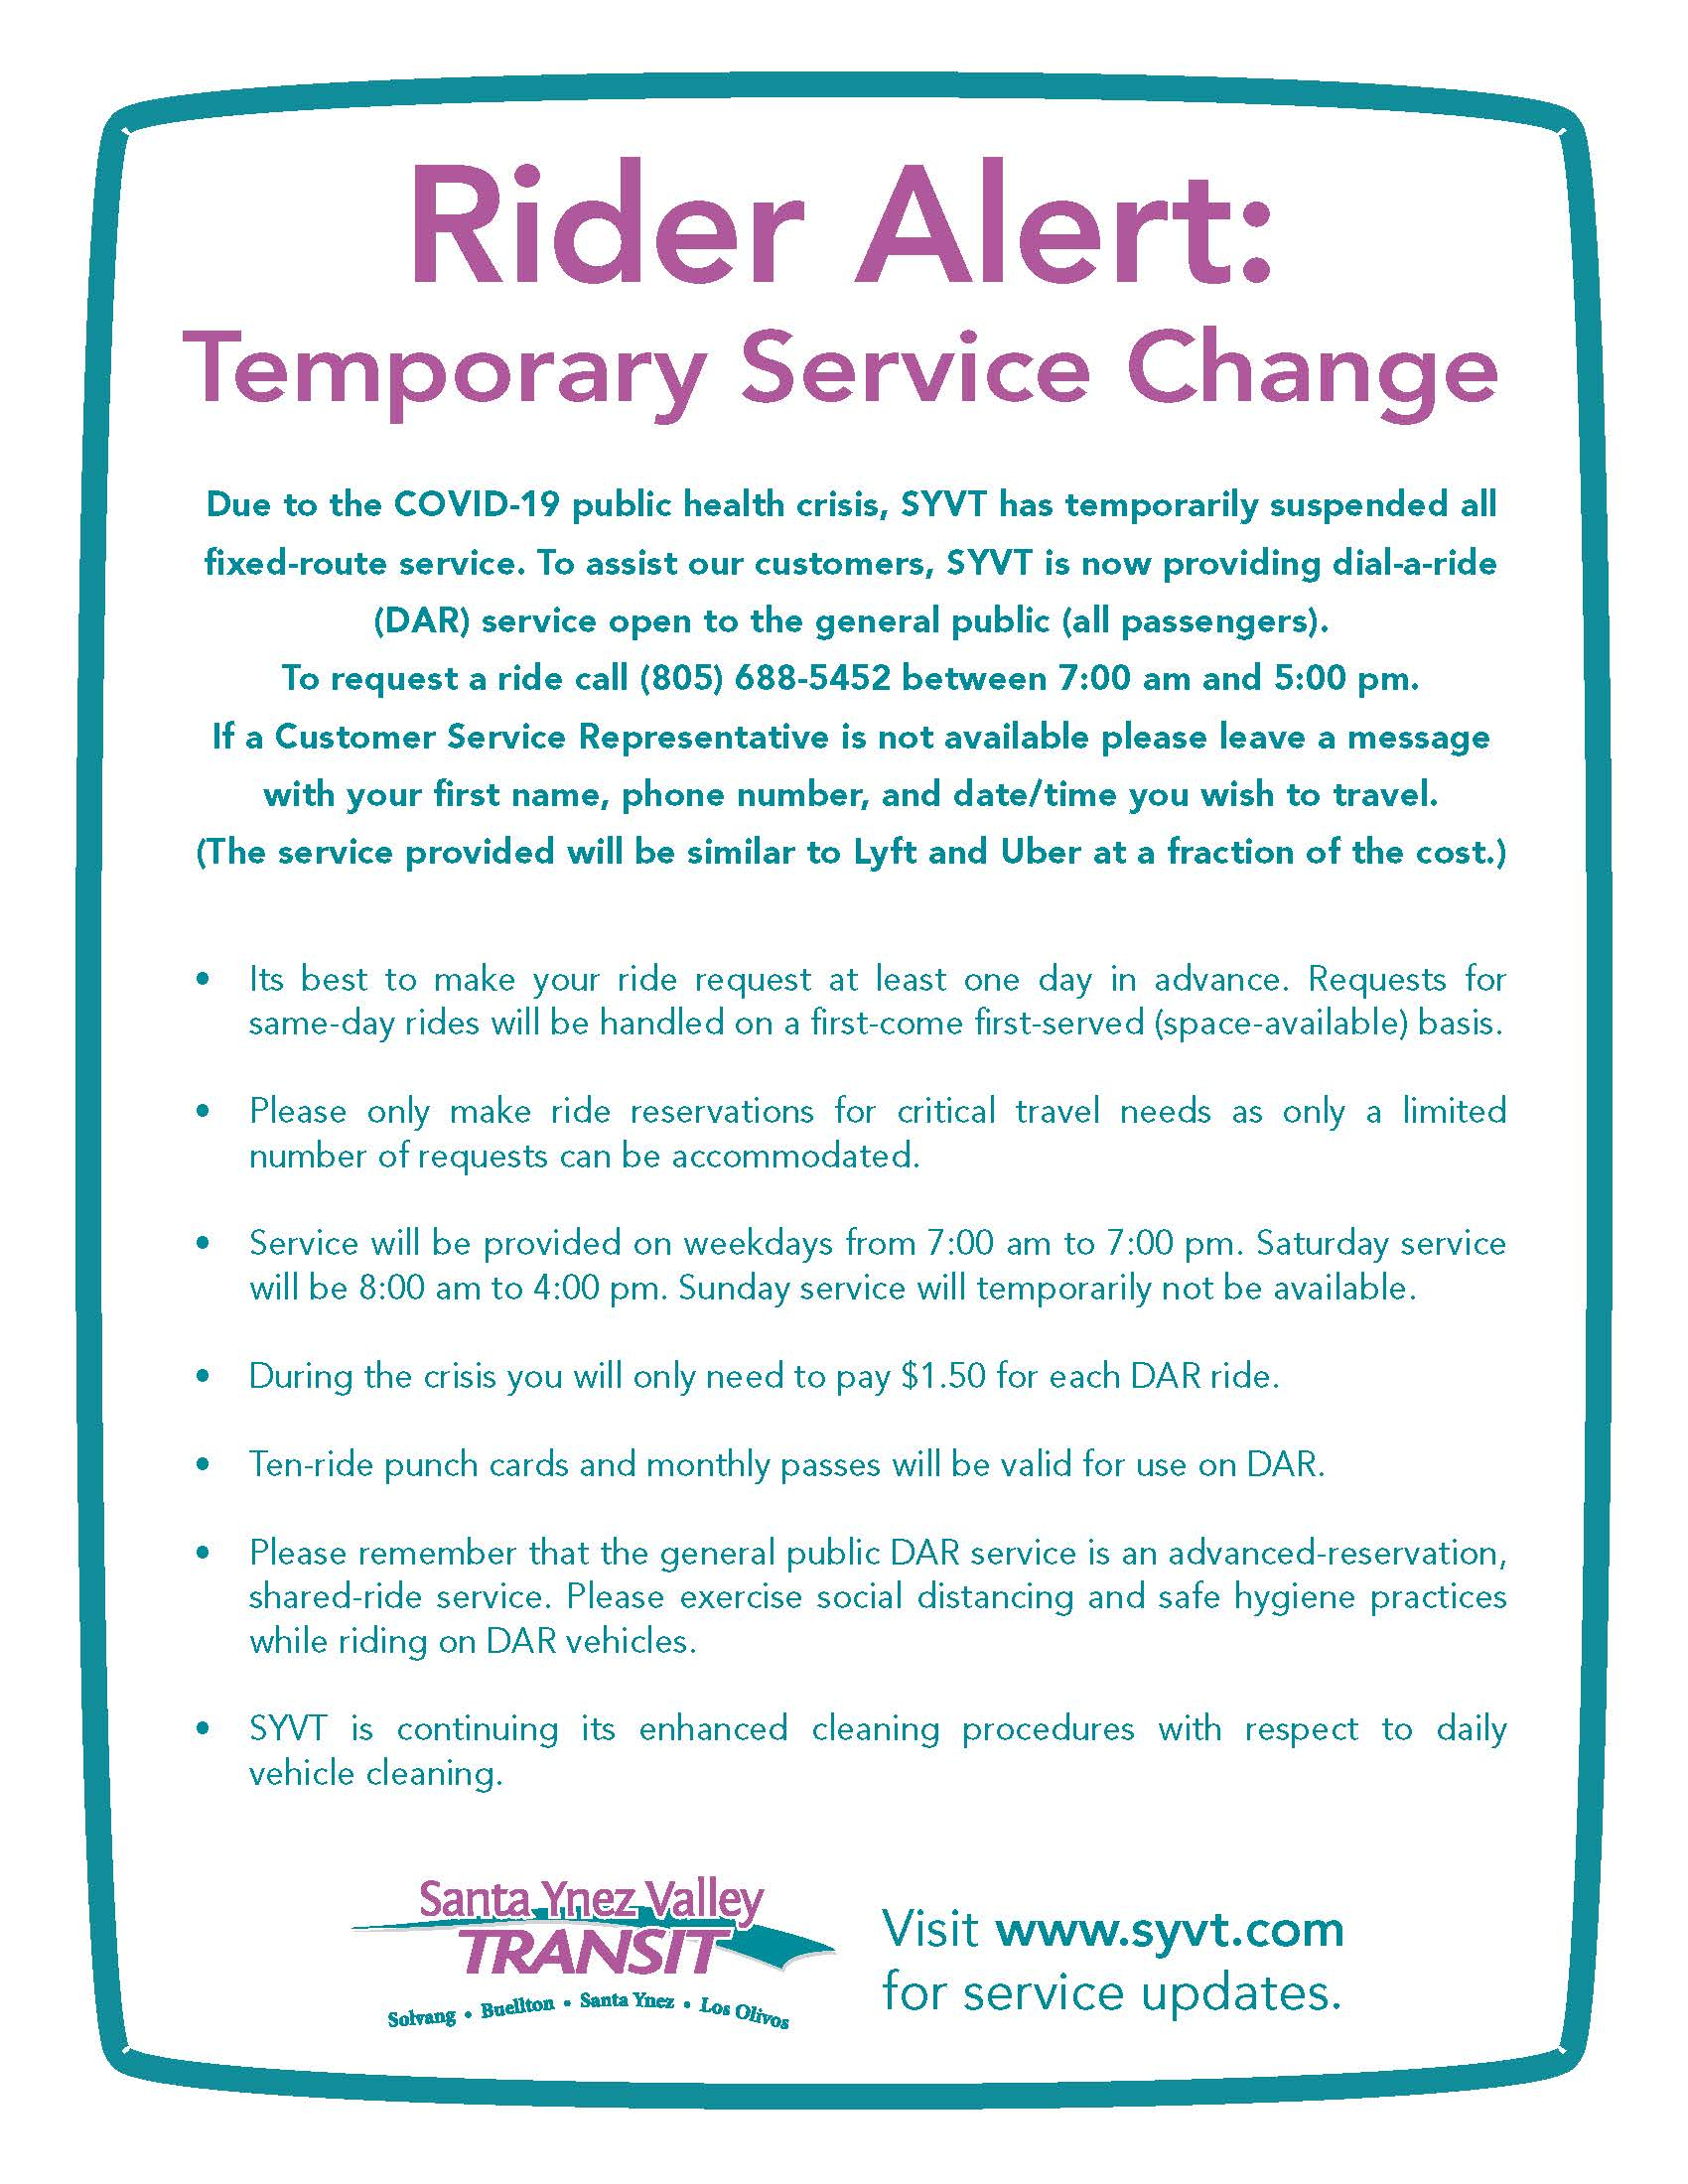 Bus Stop_Temp Service Change_Covid 19